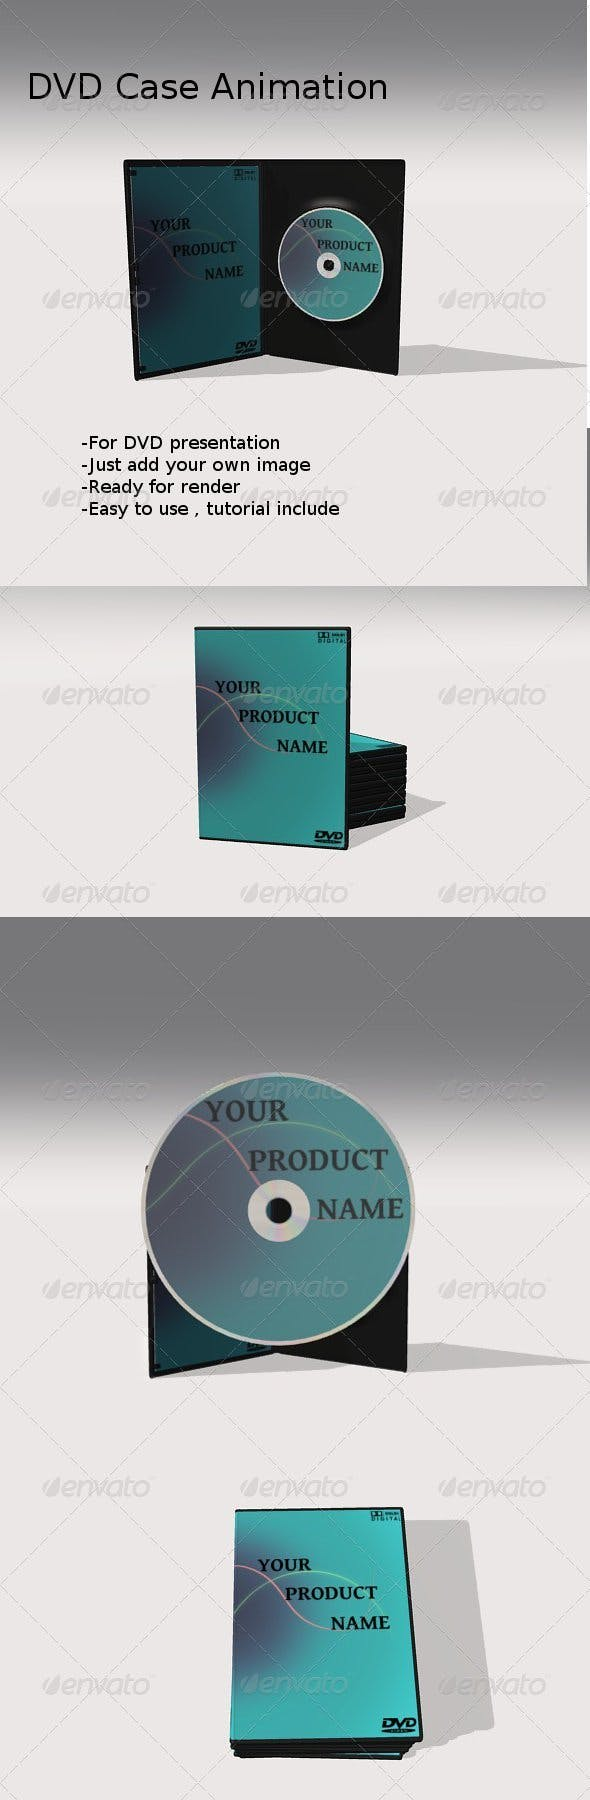 Animated DVD case - 3DOcean Item for Sale